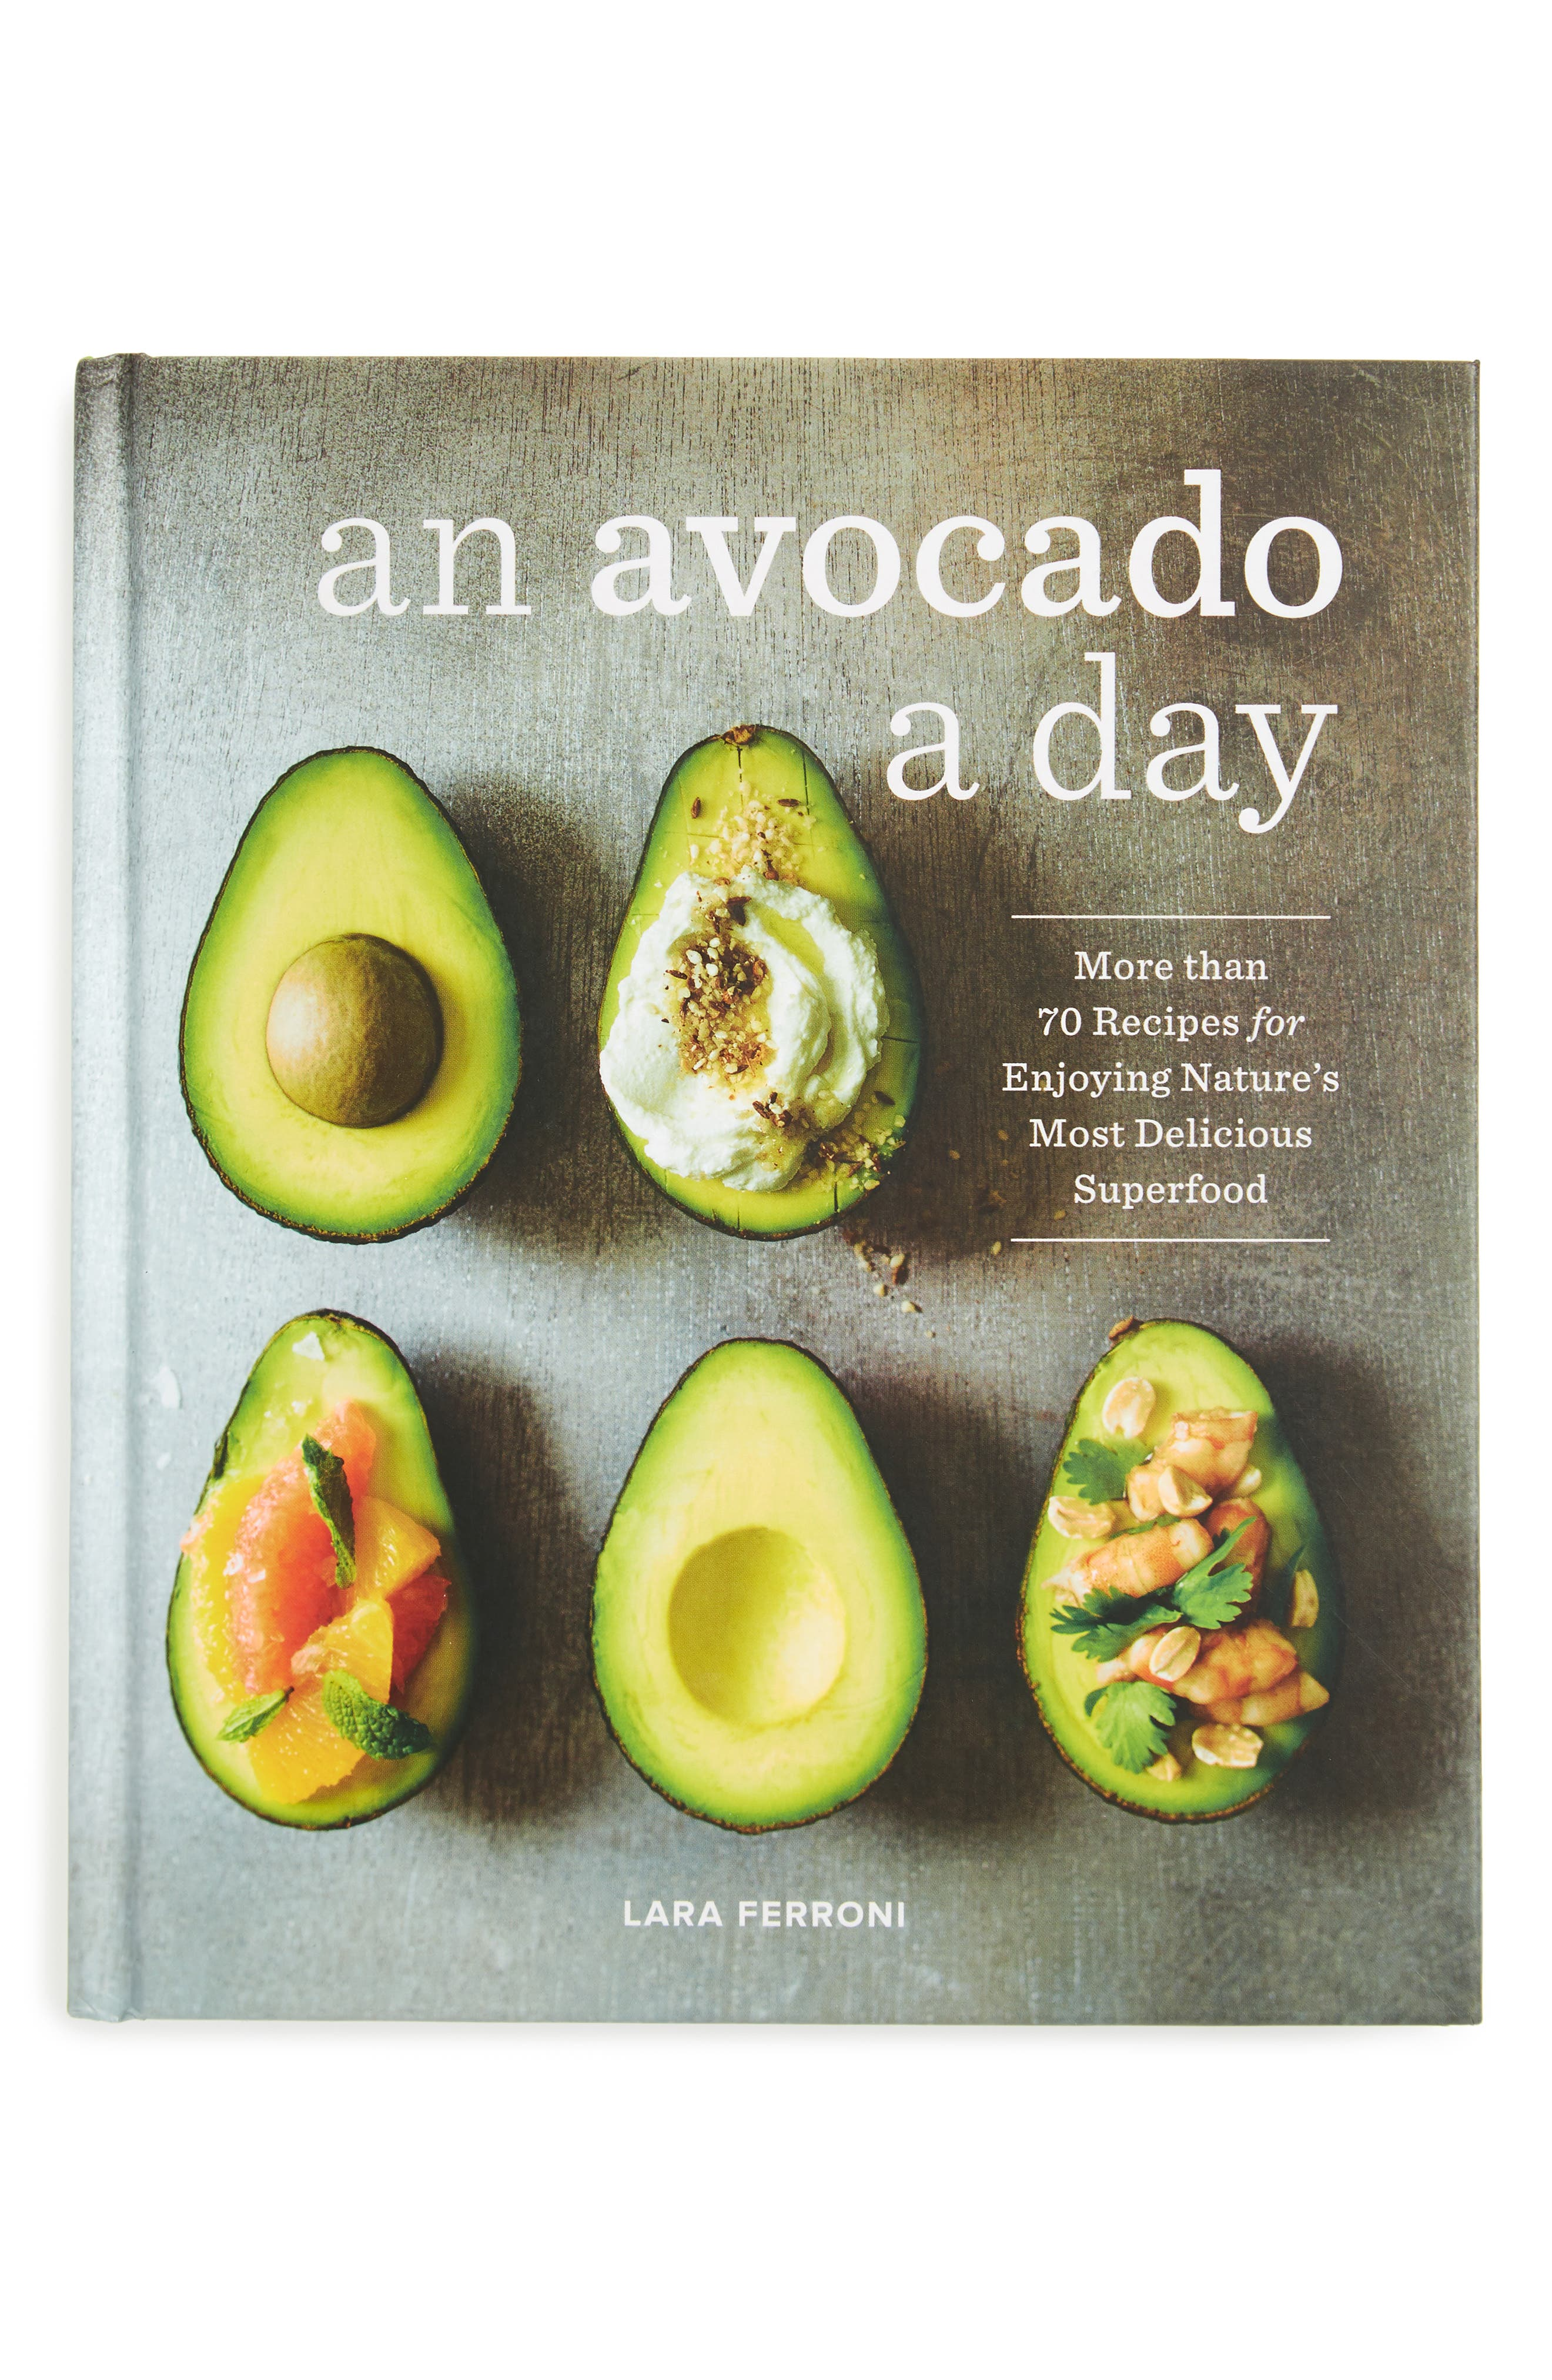 Alternate Image 1 Selected - 'An Avocado a Day: More Than 70 Recipes for Enjoying Nature's Most Delicious Superfood' Recipe Book